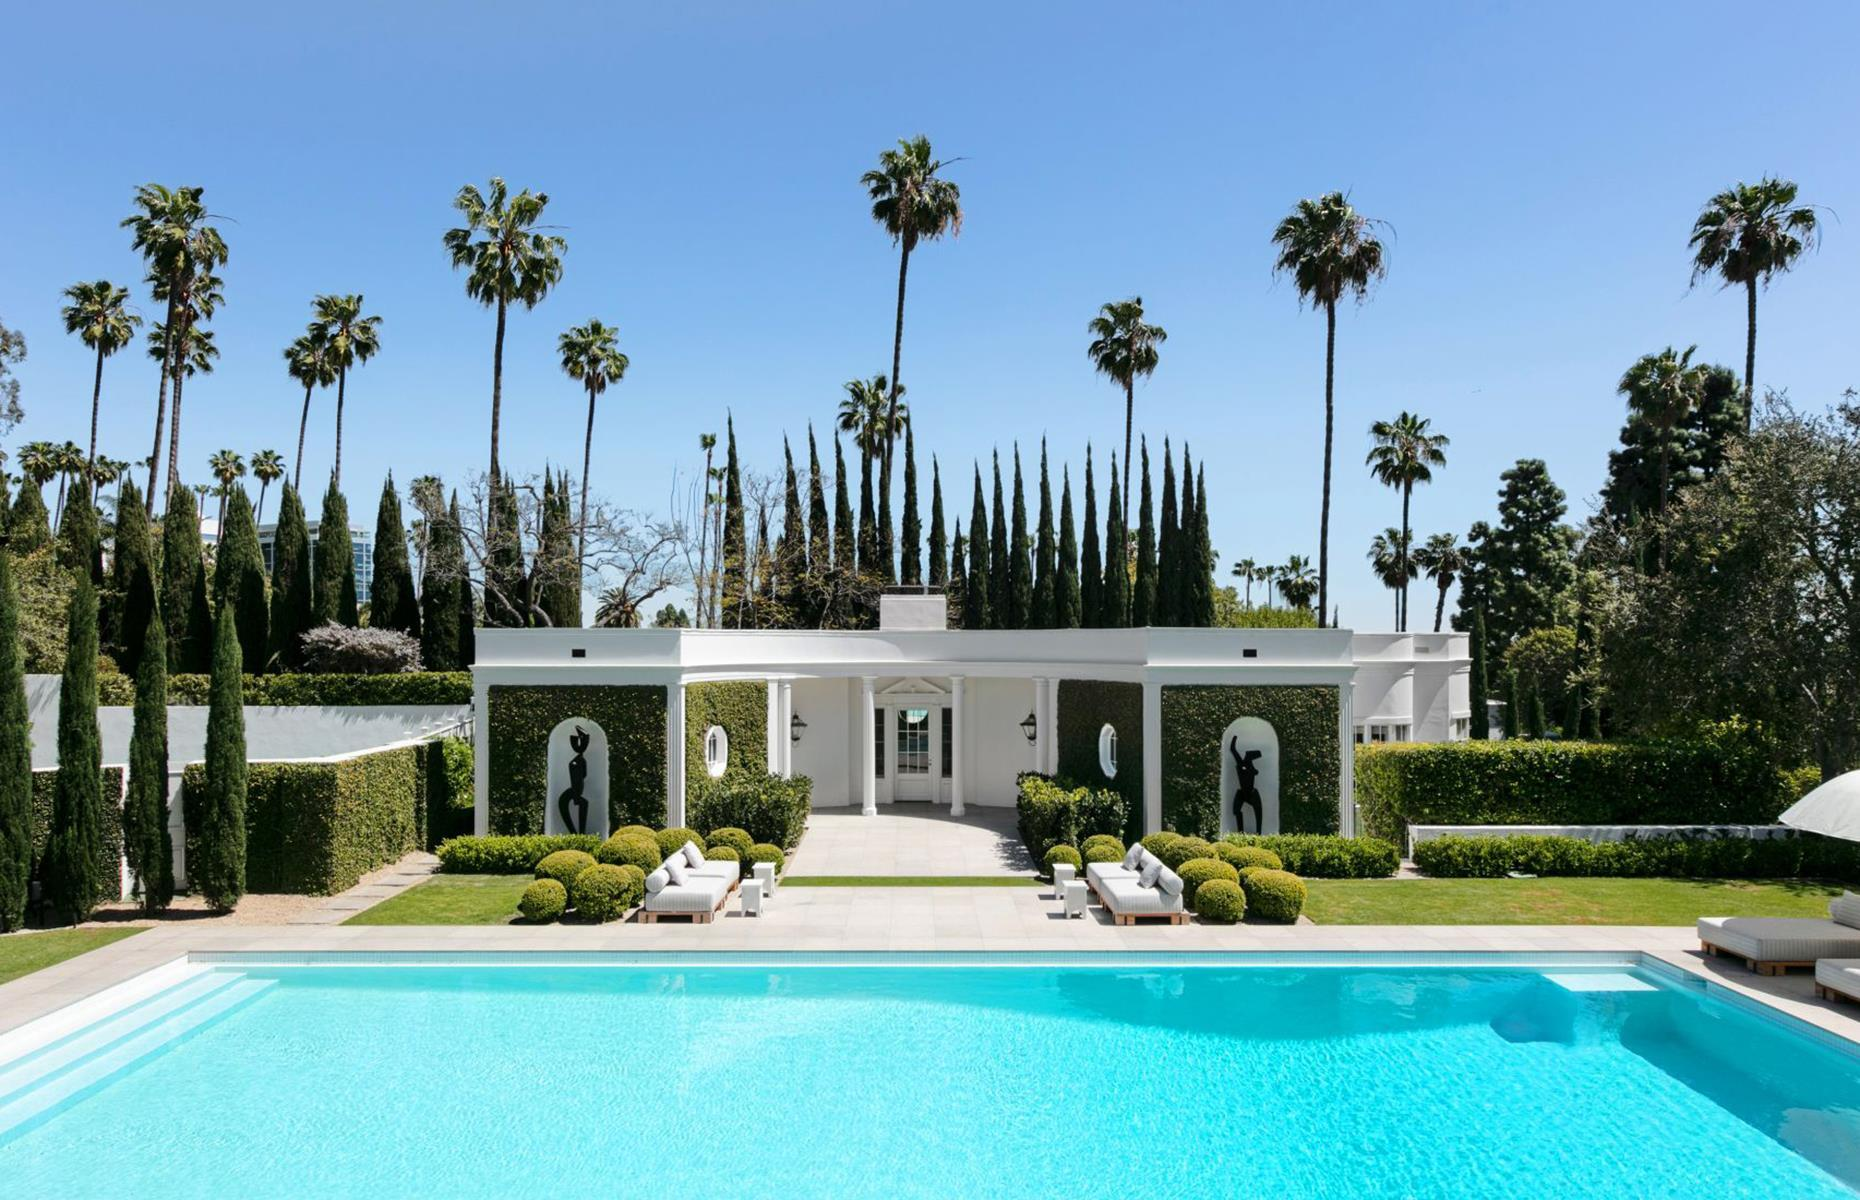 Slide 6 of 52: This mid-century masterpiece is perfect for spending your vacation living like a film star. Statues flank the arched entrance, a library opens to a records room and palm trees soar over the private pool and sculpture garden. Just minutes from the legendary Sunset Boulevard, the villa has seven bedrooms as well as a home cinema and private tennis court.